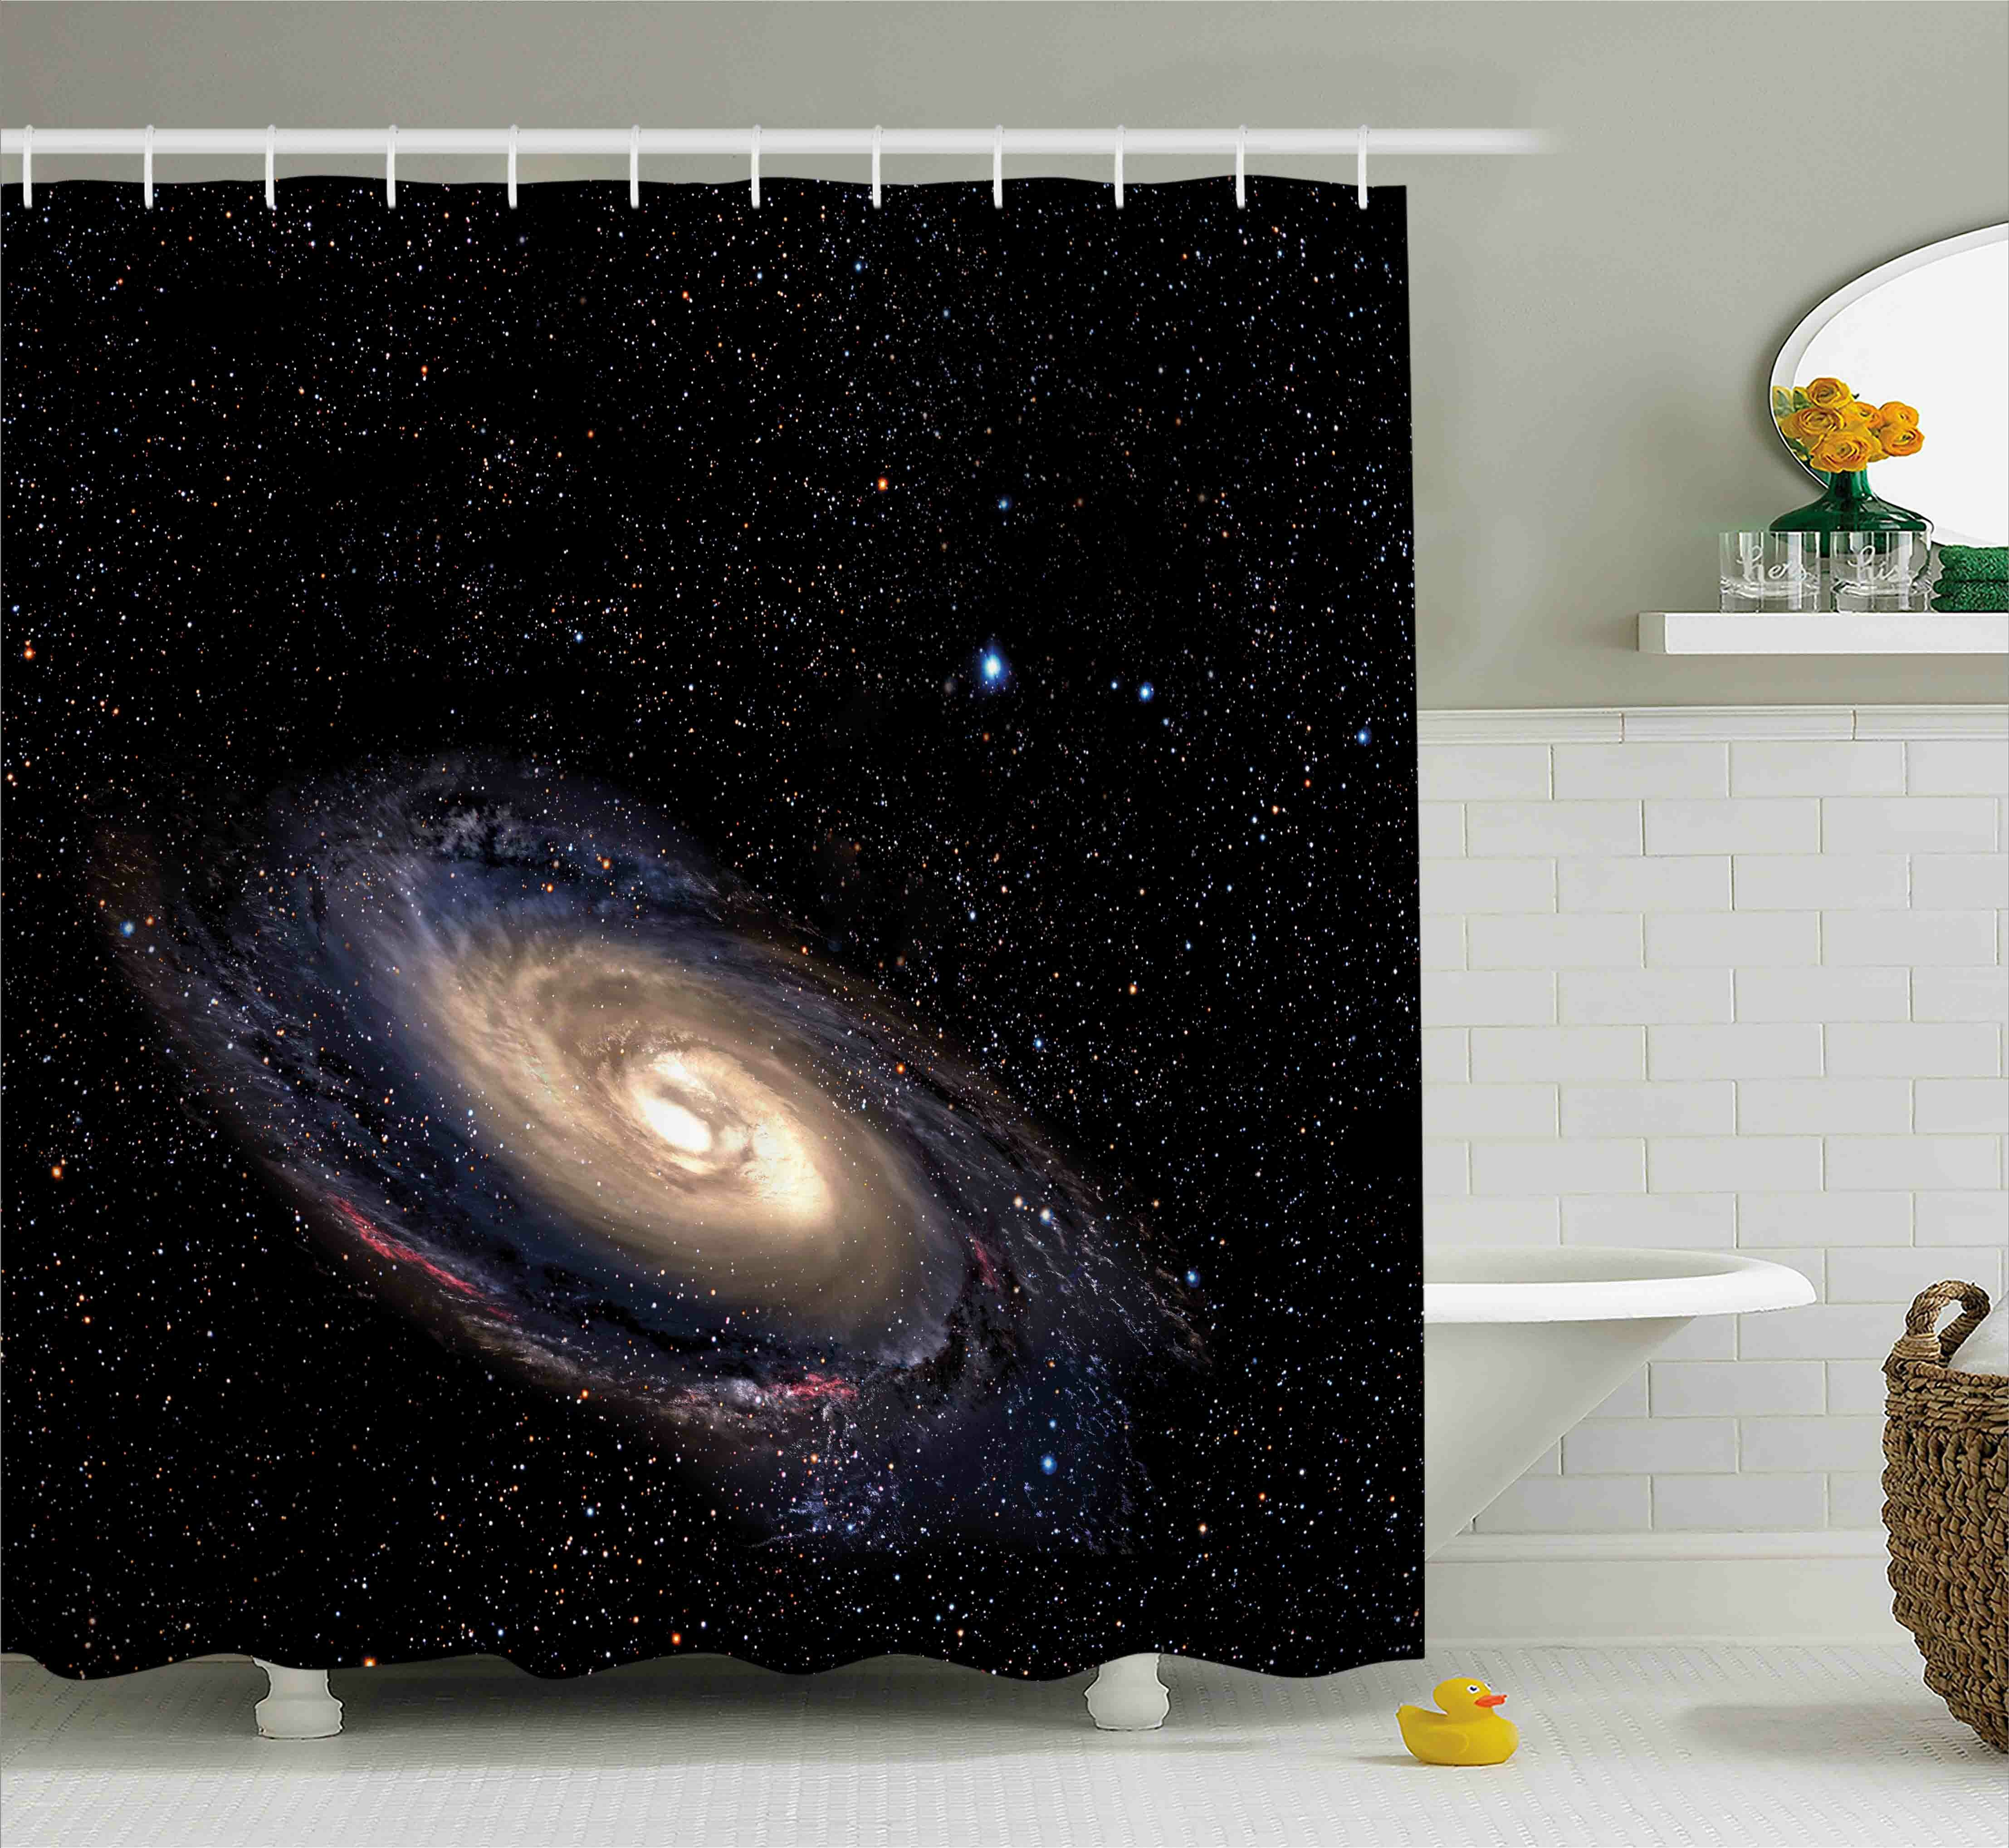 East Urban Home Spiral Space Universe Shower Curtain